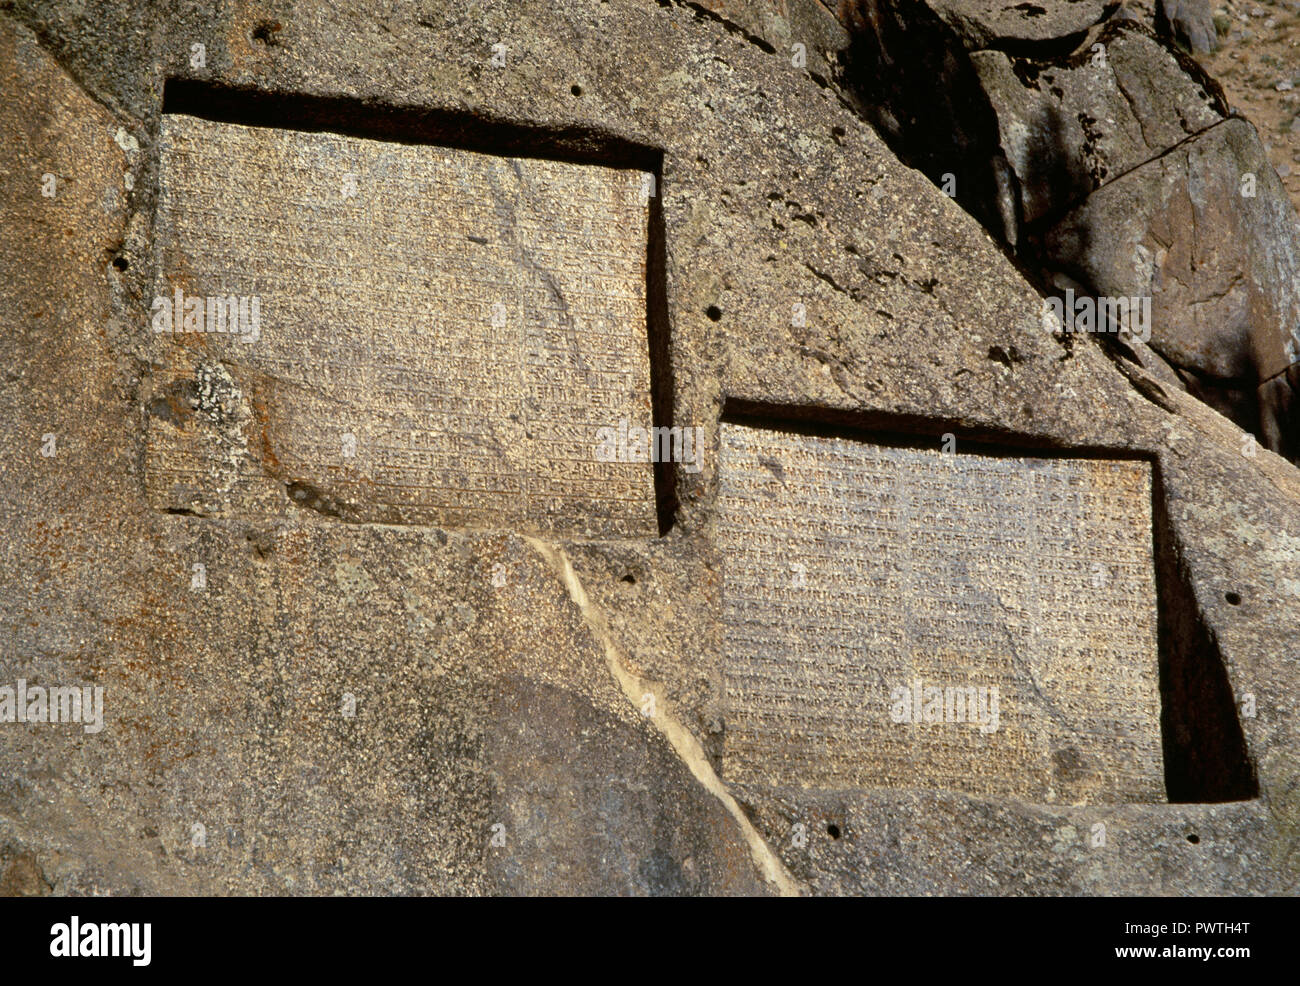 Ganjnameh. Ancient inscription carved in granite in Alvand Mountain, ordered by Darius the Great (521-485 BC) (left) and by Xerxes the Great (485-465 BC) (right) in three languages, Old Persian, Neo-Babylonian and Neo-Elamite. Near Hamedan. Islamic Republic of Iran. - Stock Image